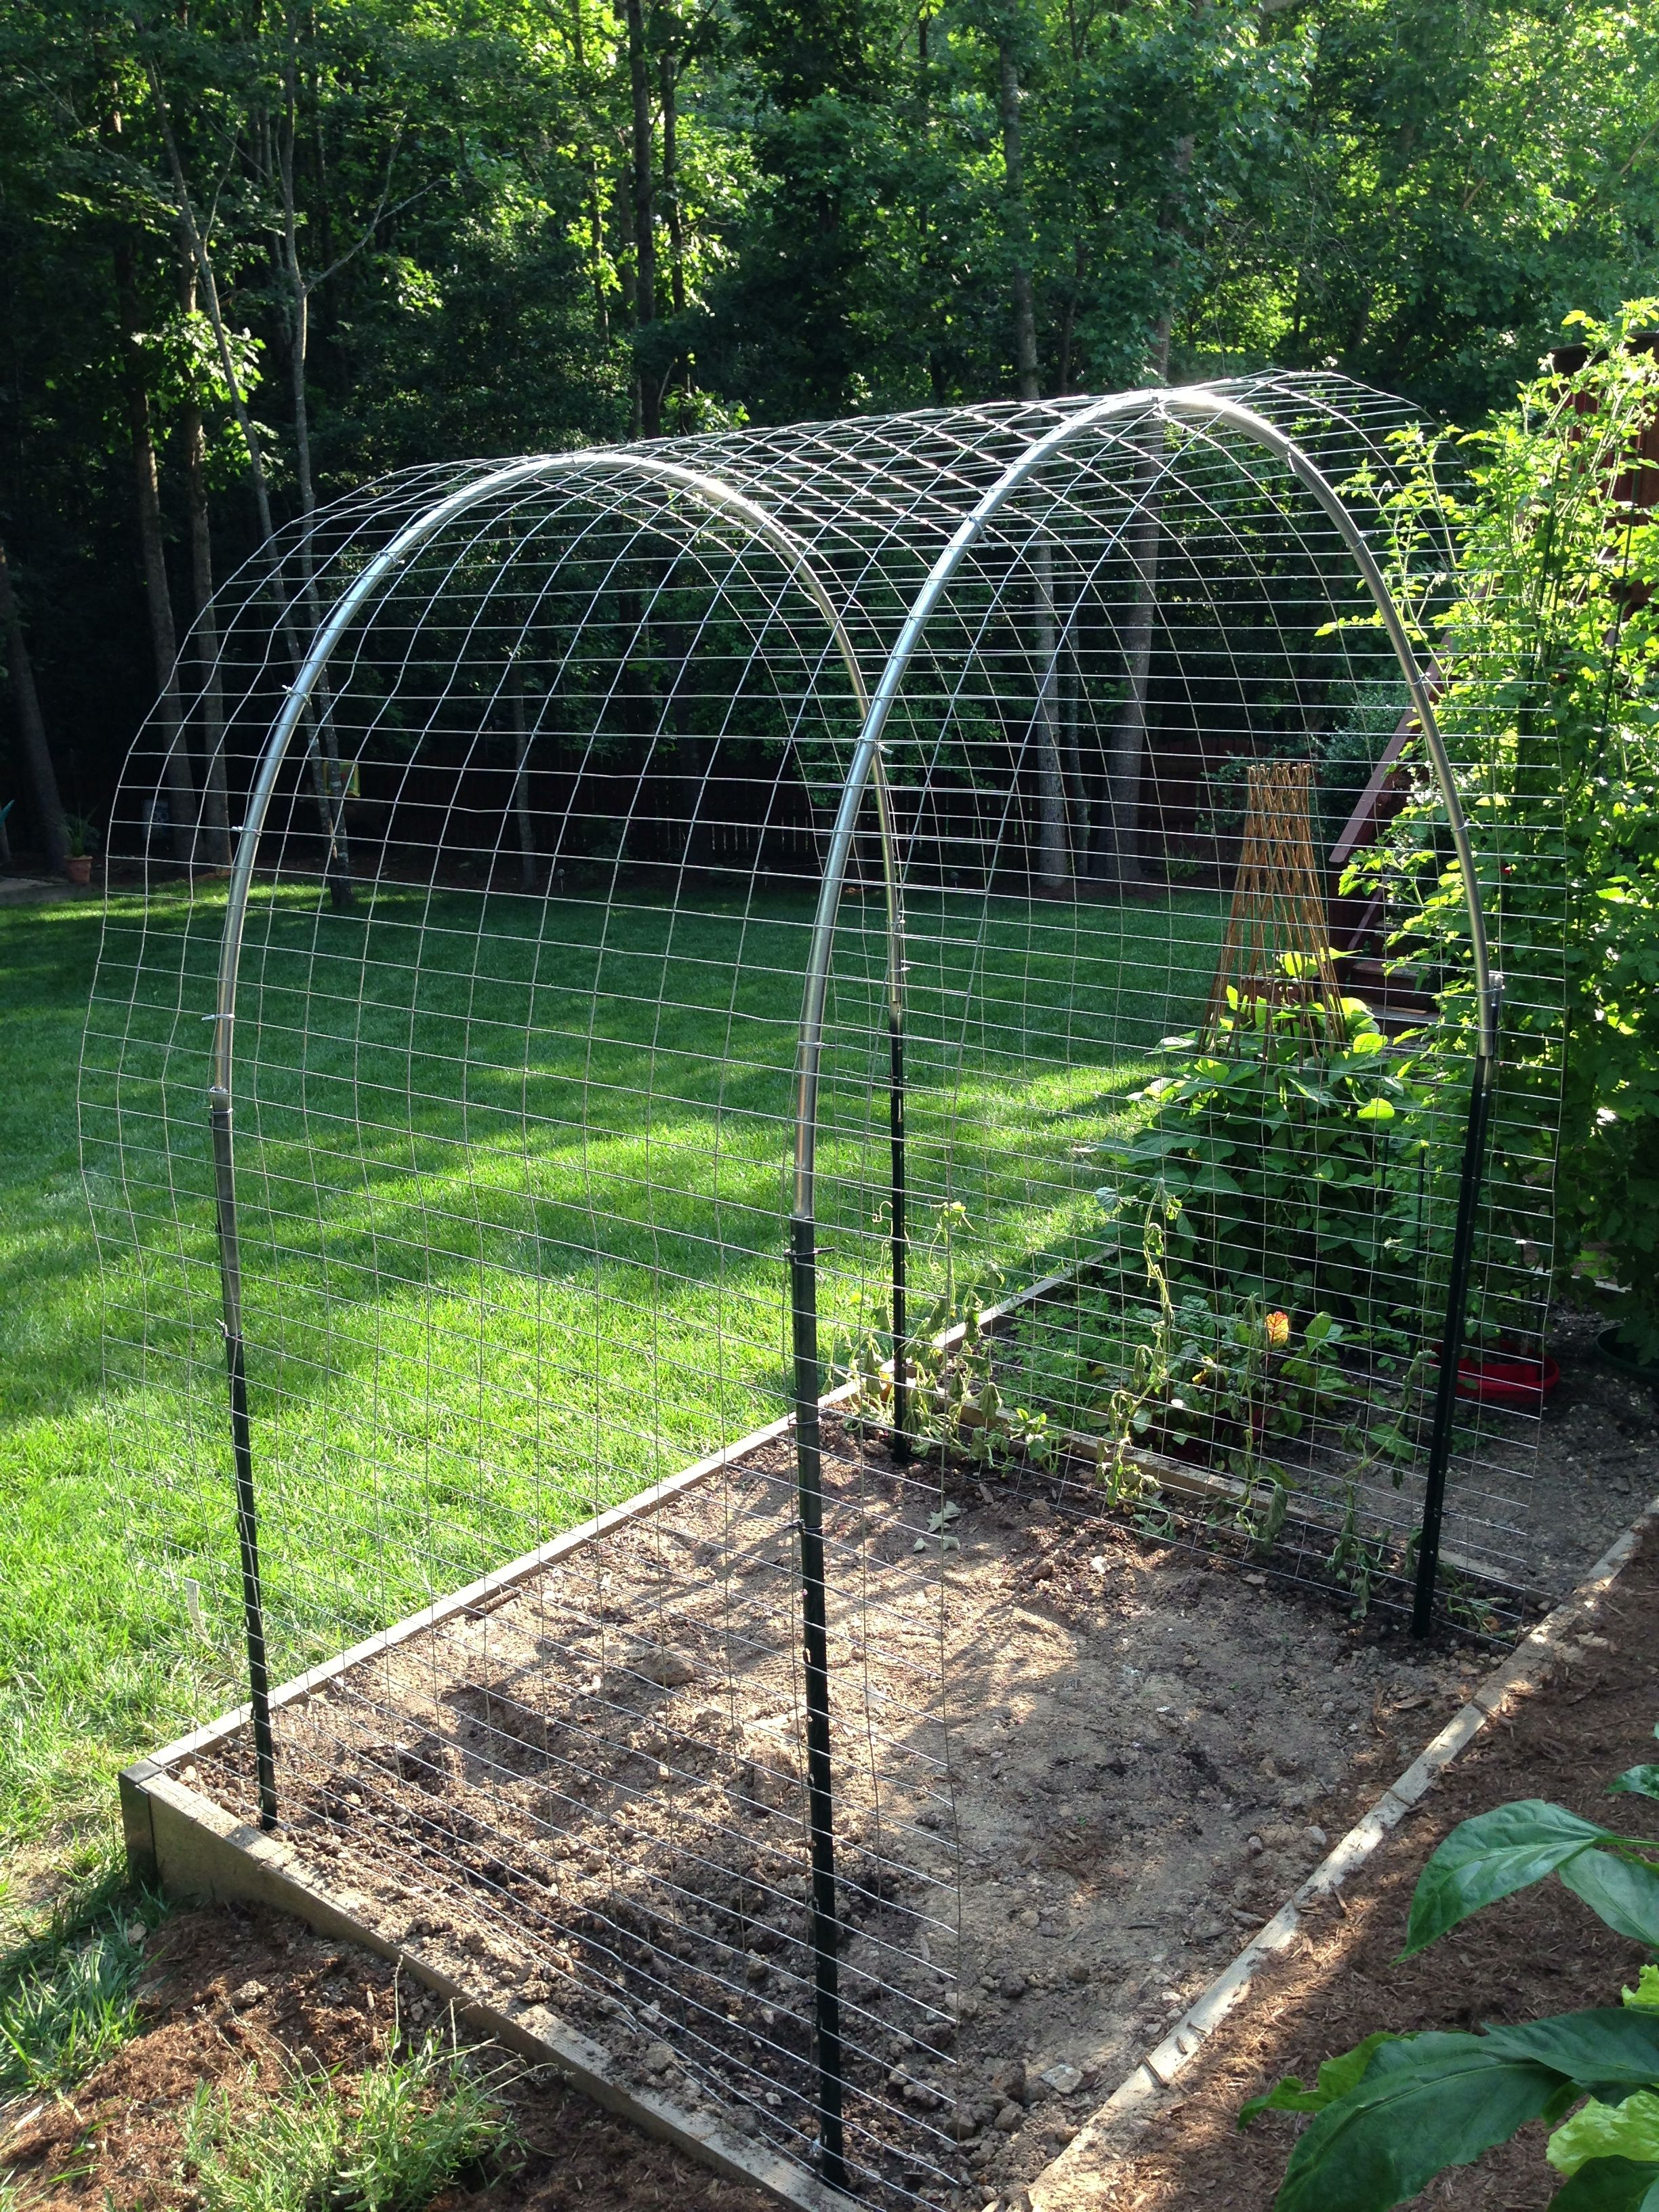 Arched Trellis For Cantaloupe Watermelon And Sugar